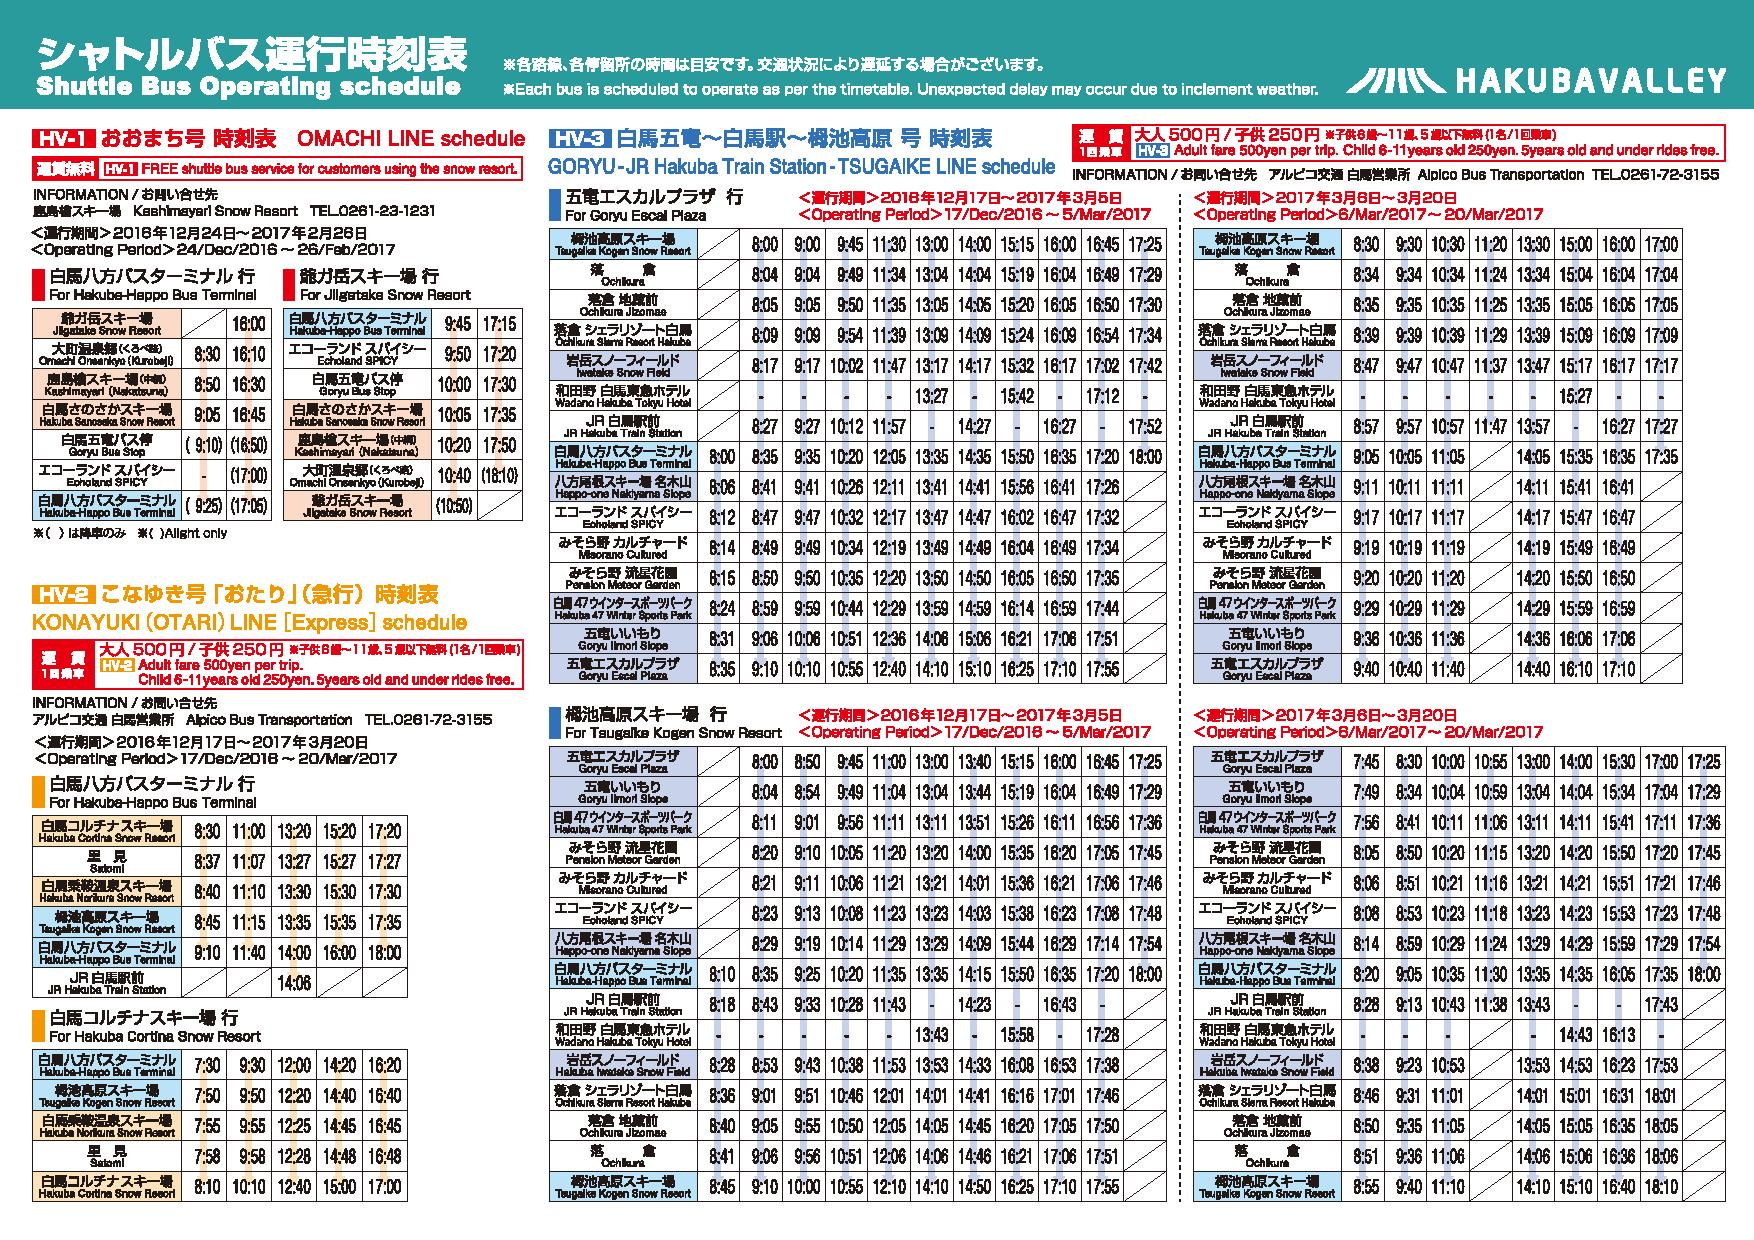 Page 2 of the hakuba valley shuttle bus timetable